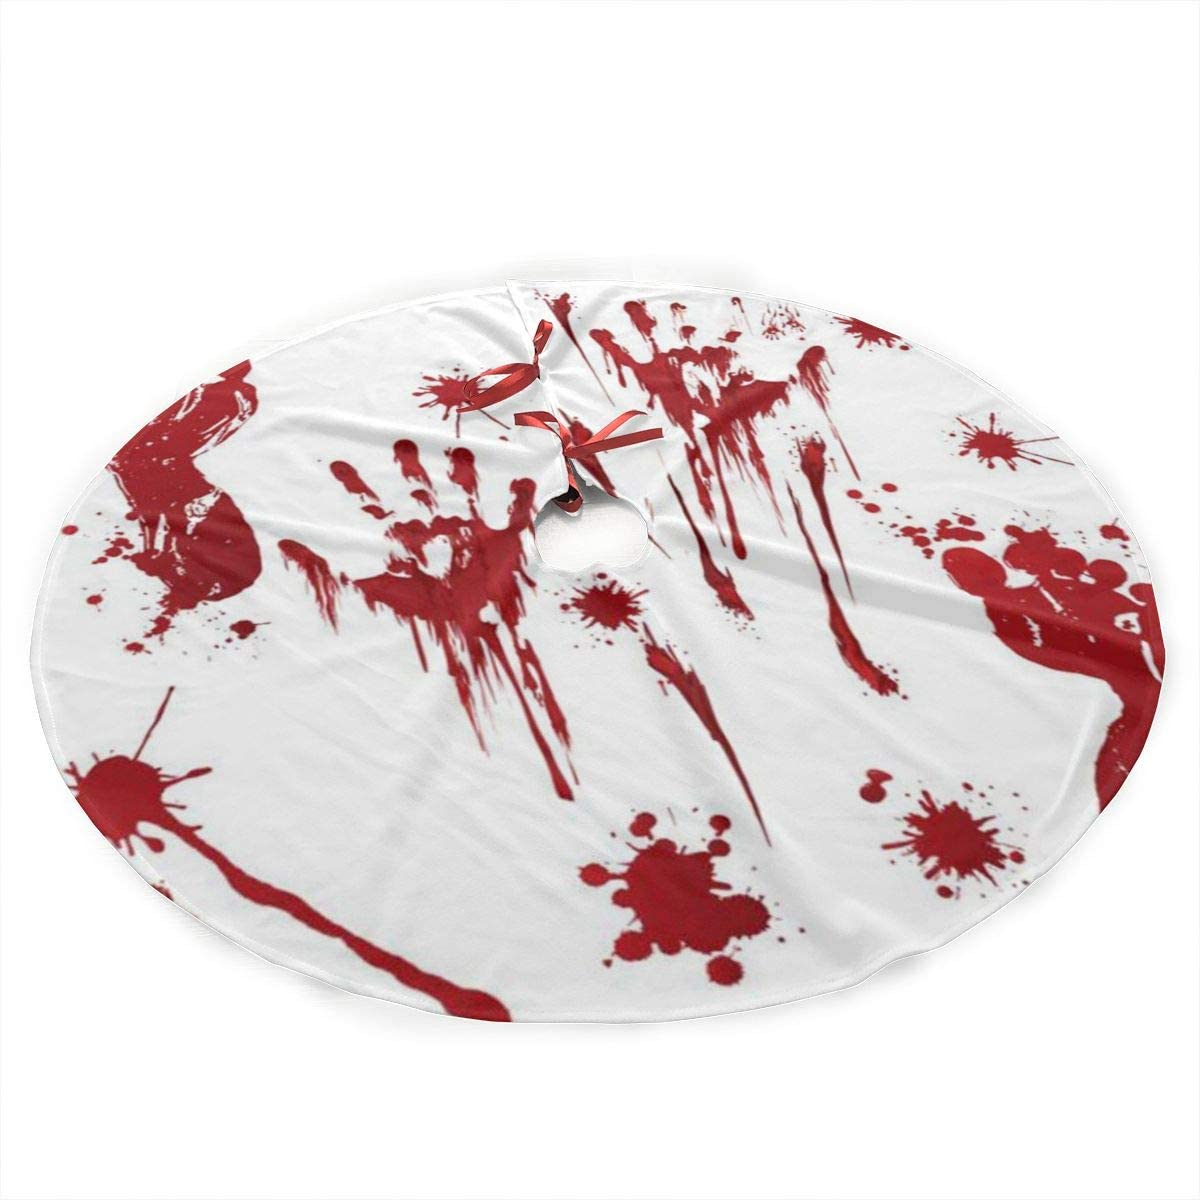 Happy-Life 36 Inch Christmas Tree Blood Halloween Max 66% OFF Footprin Skirt Credence